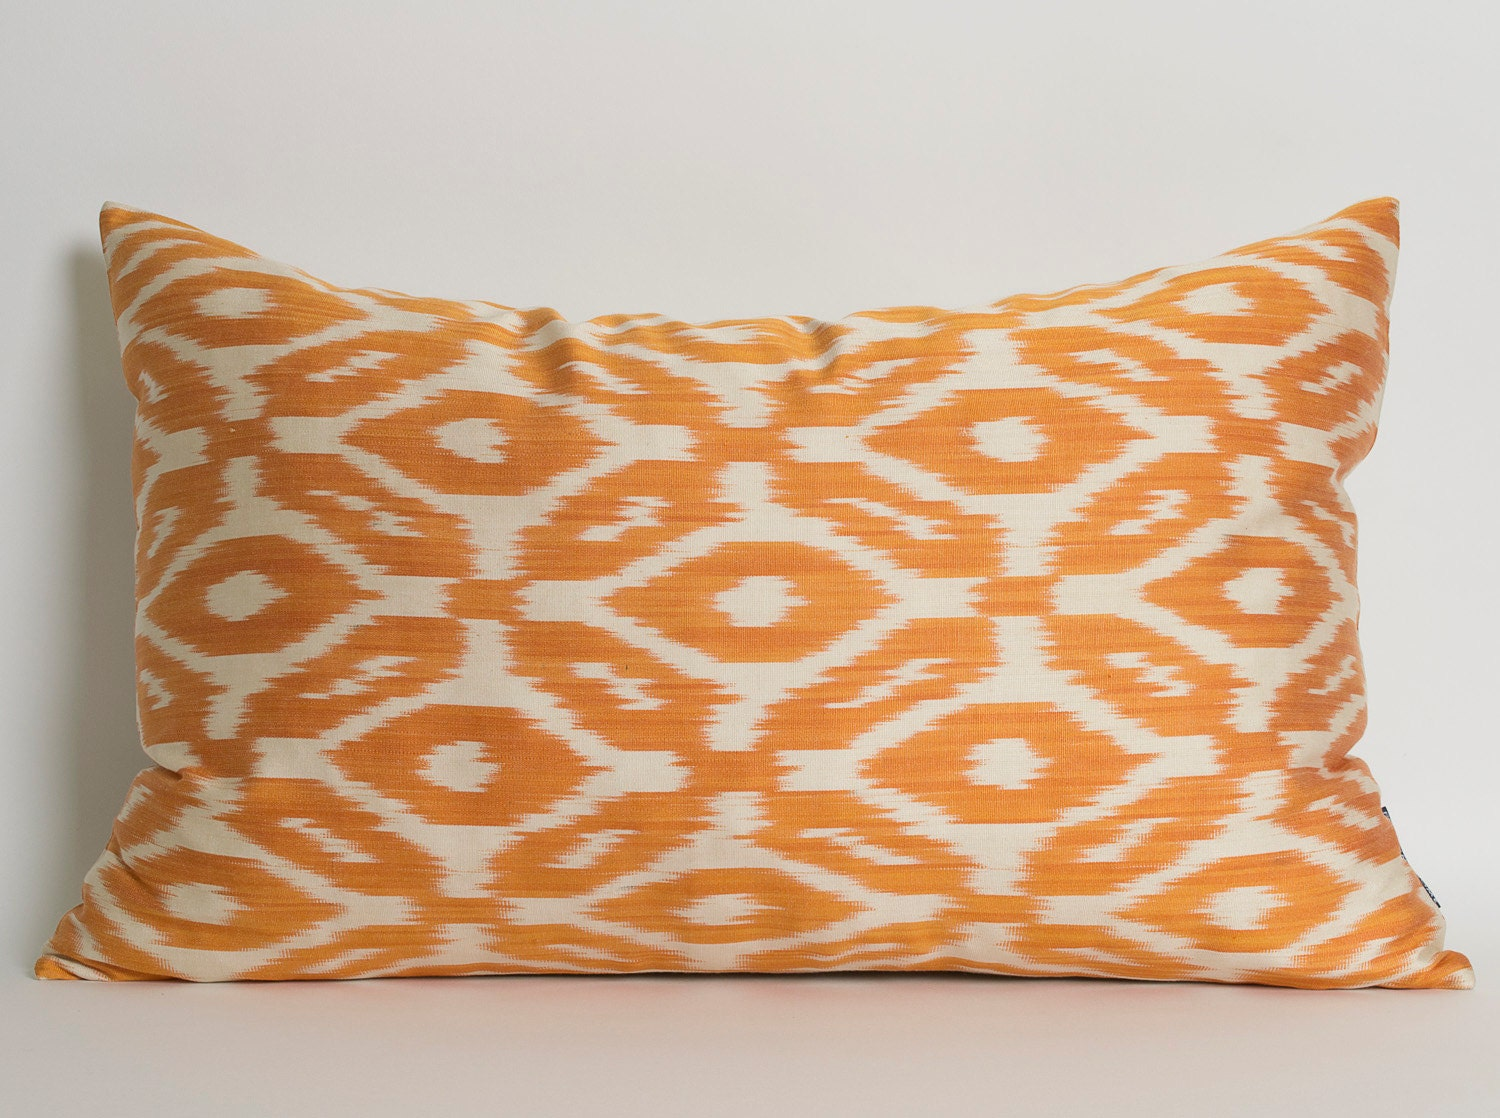 Orange Decorative Pillows Couch : Orange Ikat Pillow Cover Decorative Throw Pillows Orange